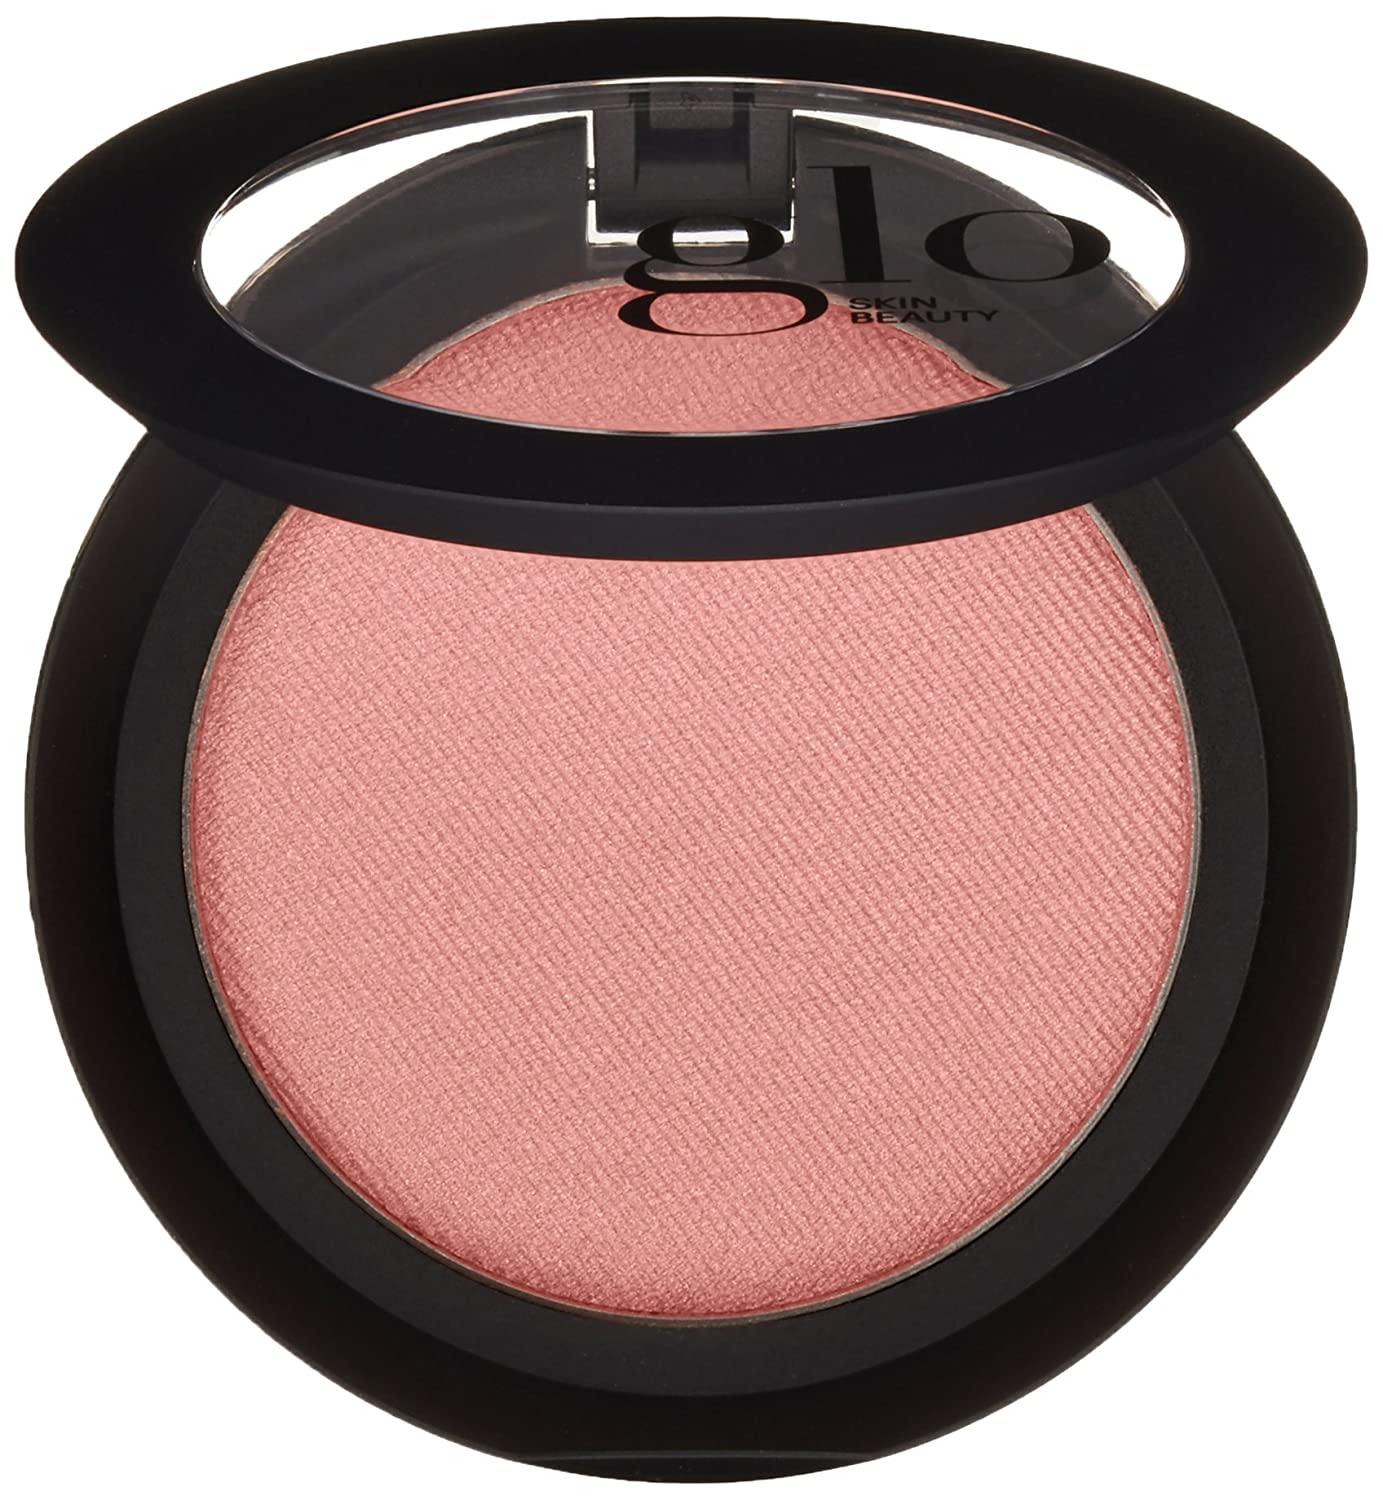 Glo Skin Beauty Powder Blush , 9 Shades , Cruelty Free, Talc Free Mineral Makeup